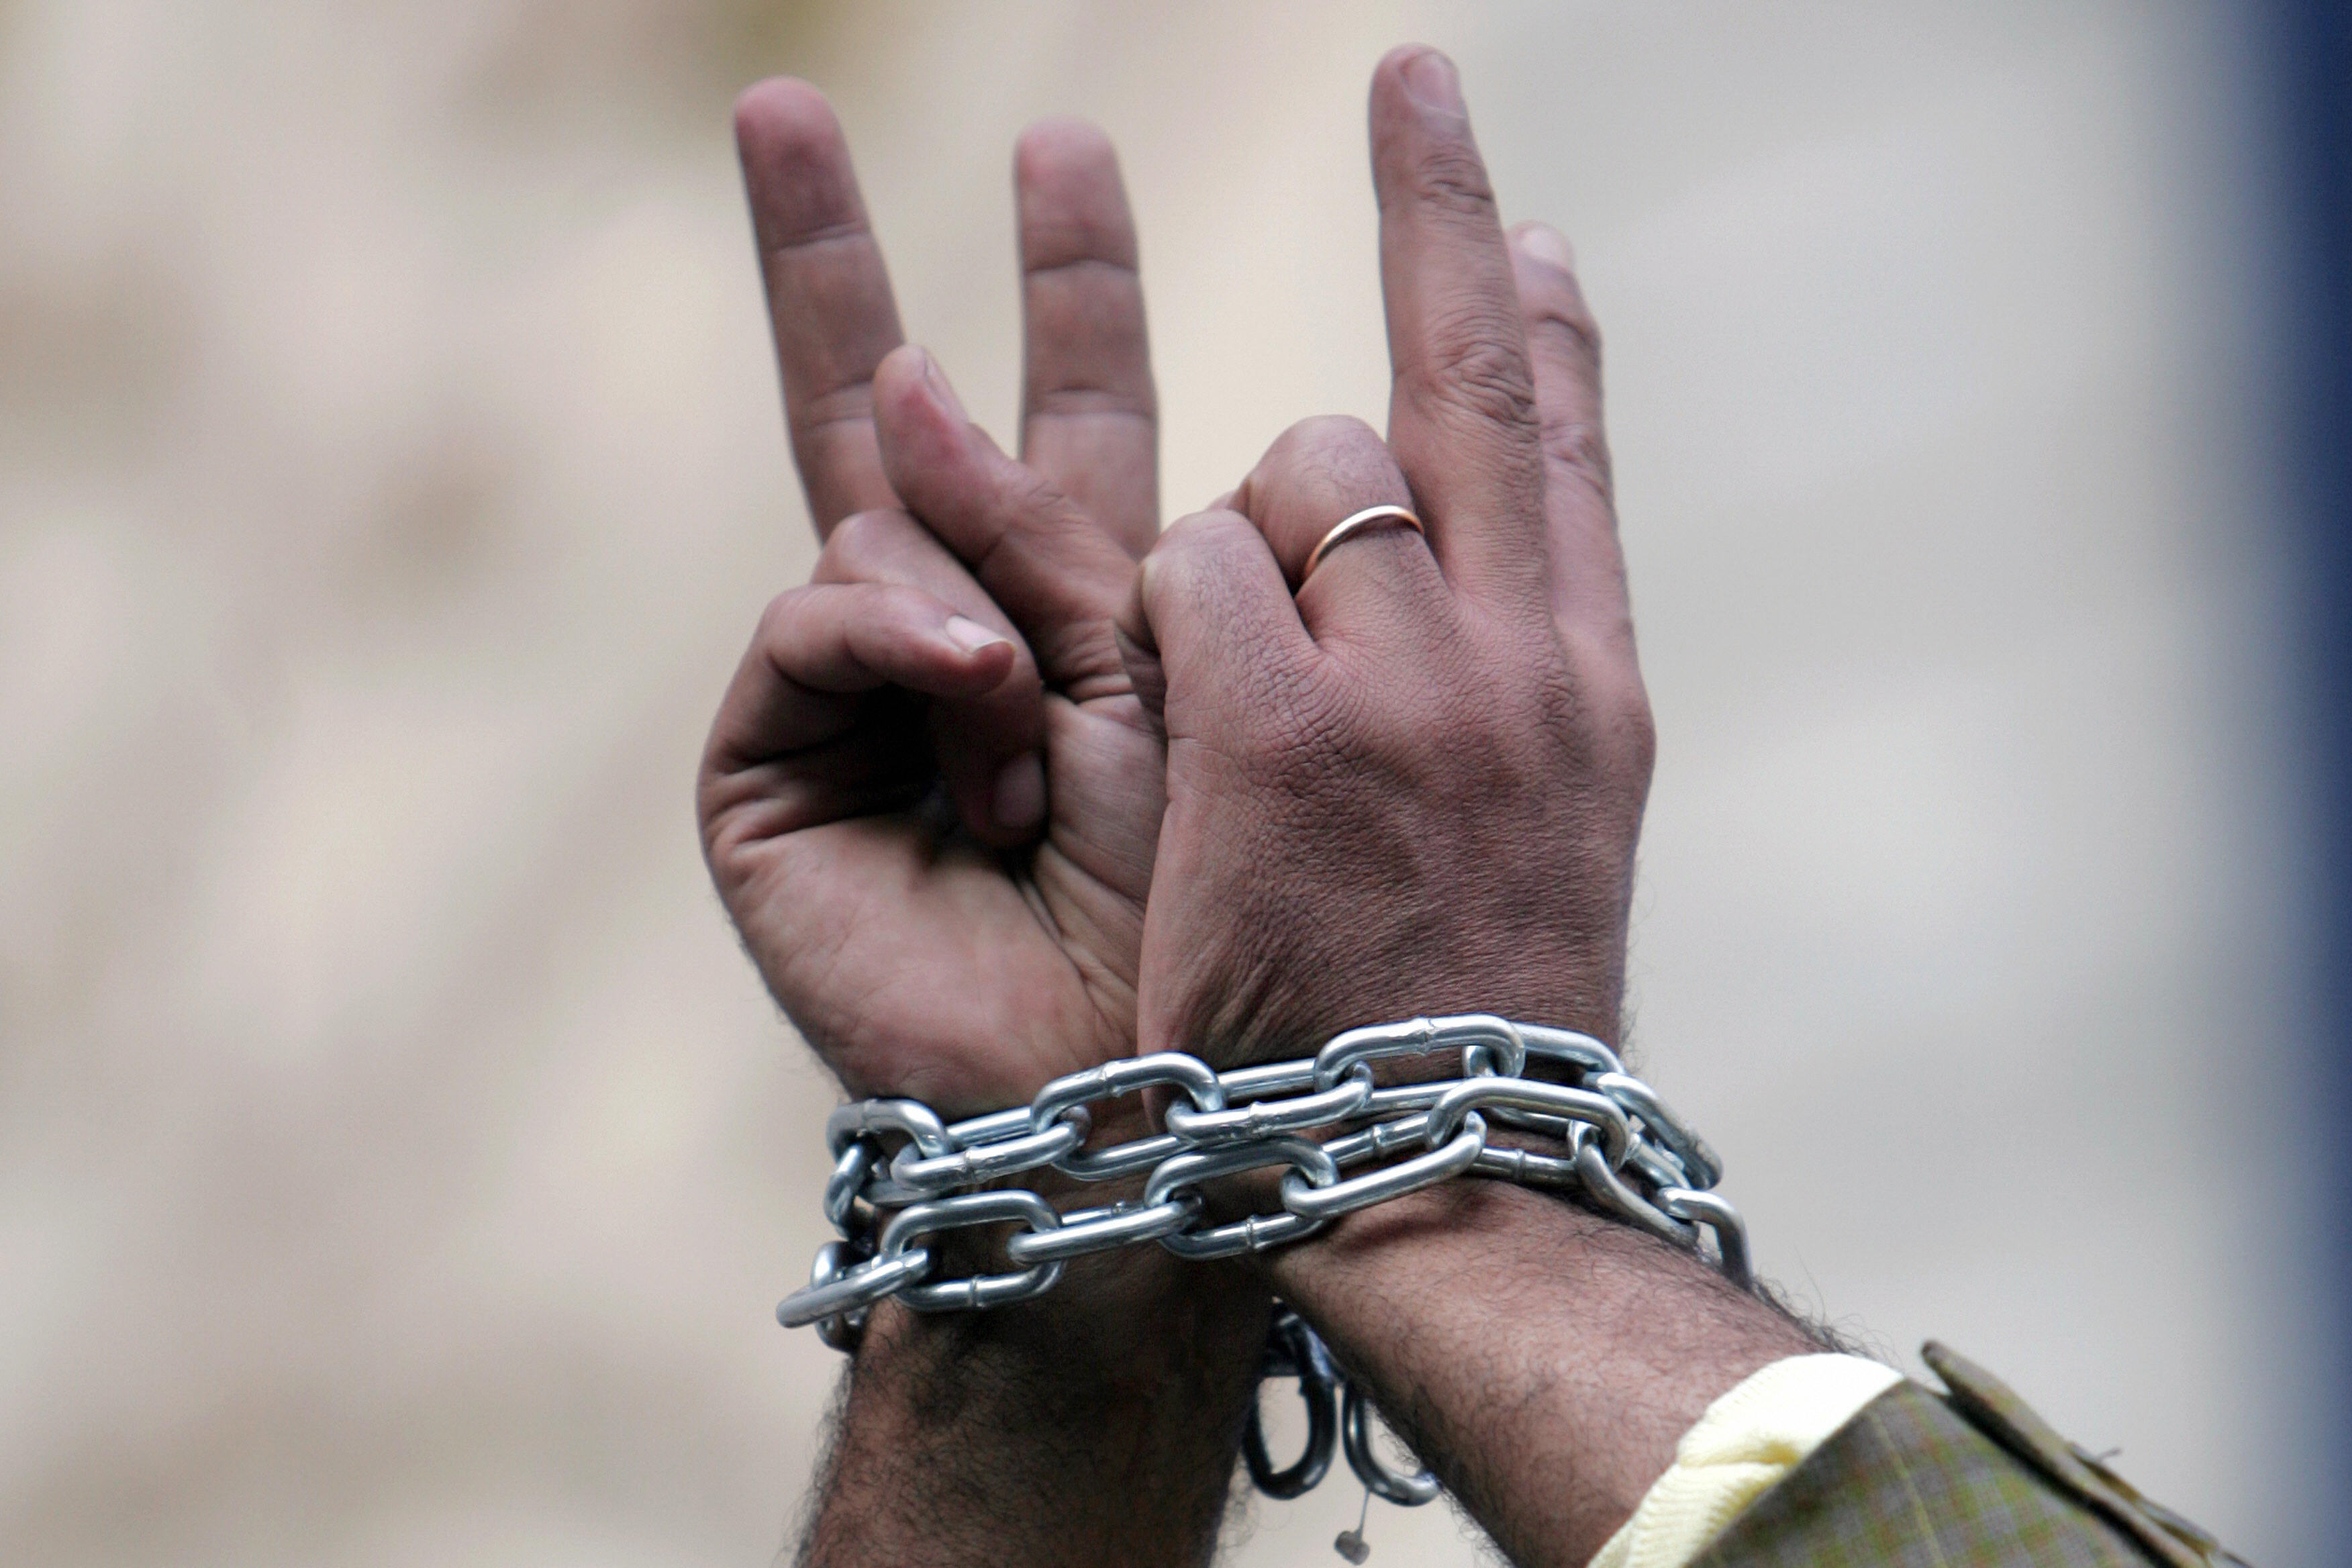 Egyptian human right activist with chained hands during a protest against torture in police stations. KHALED DESOUKI/AFP/Getty Images